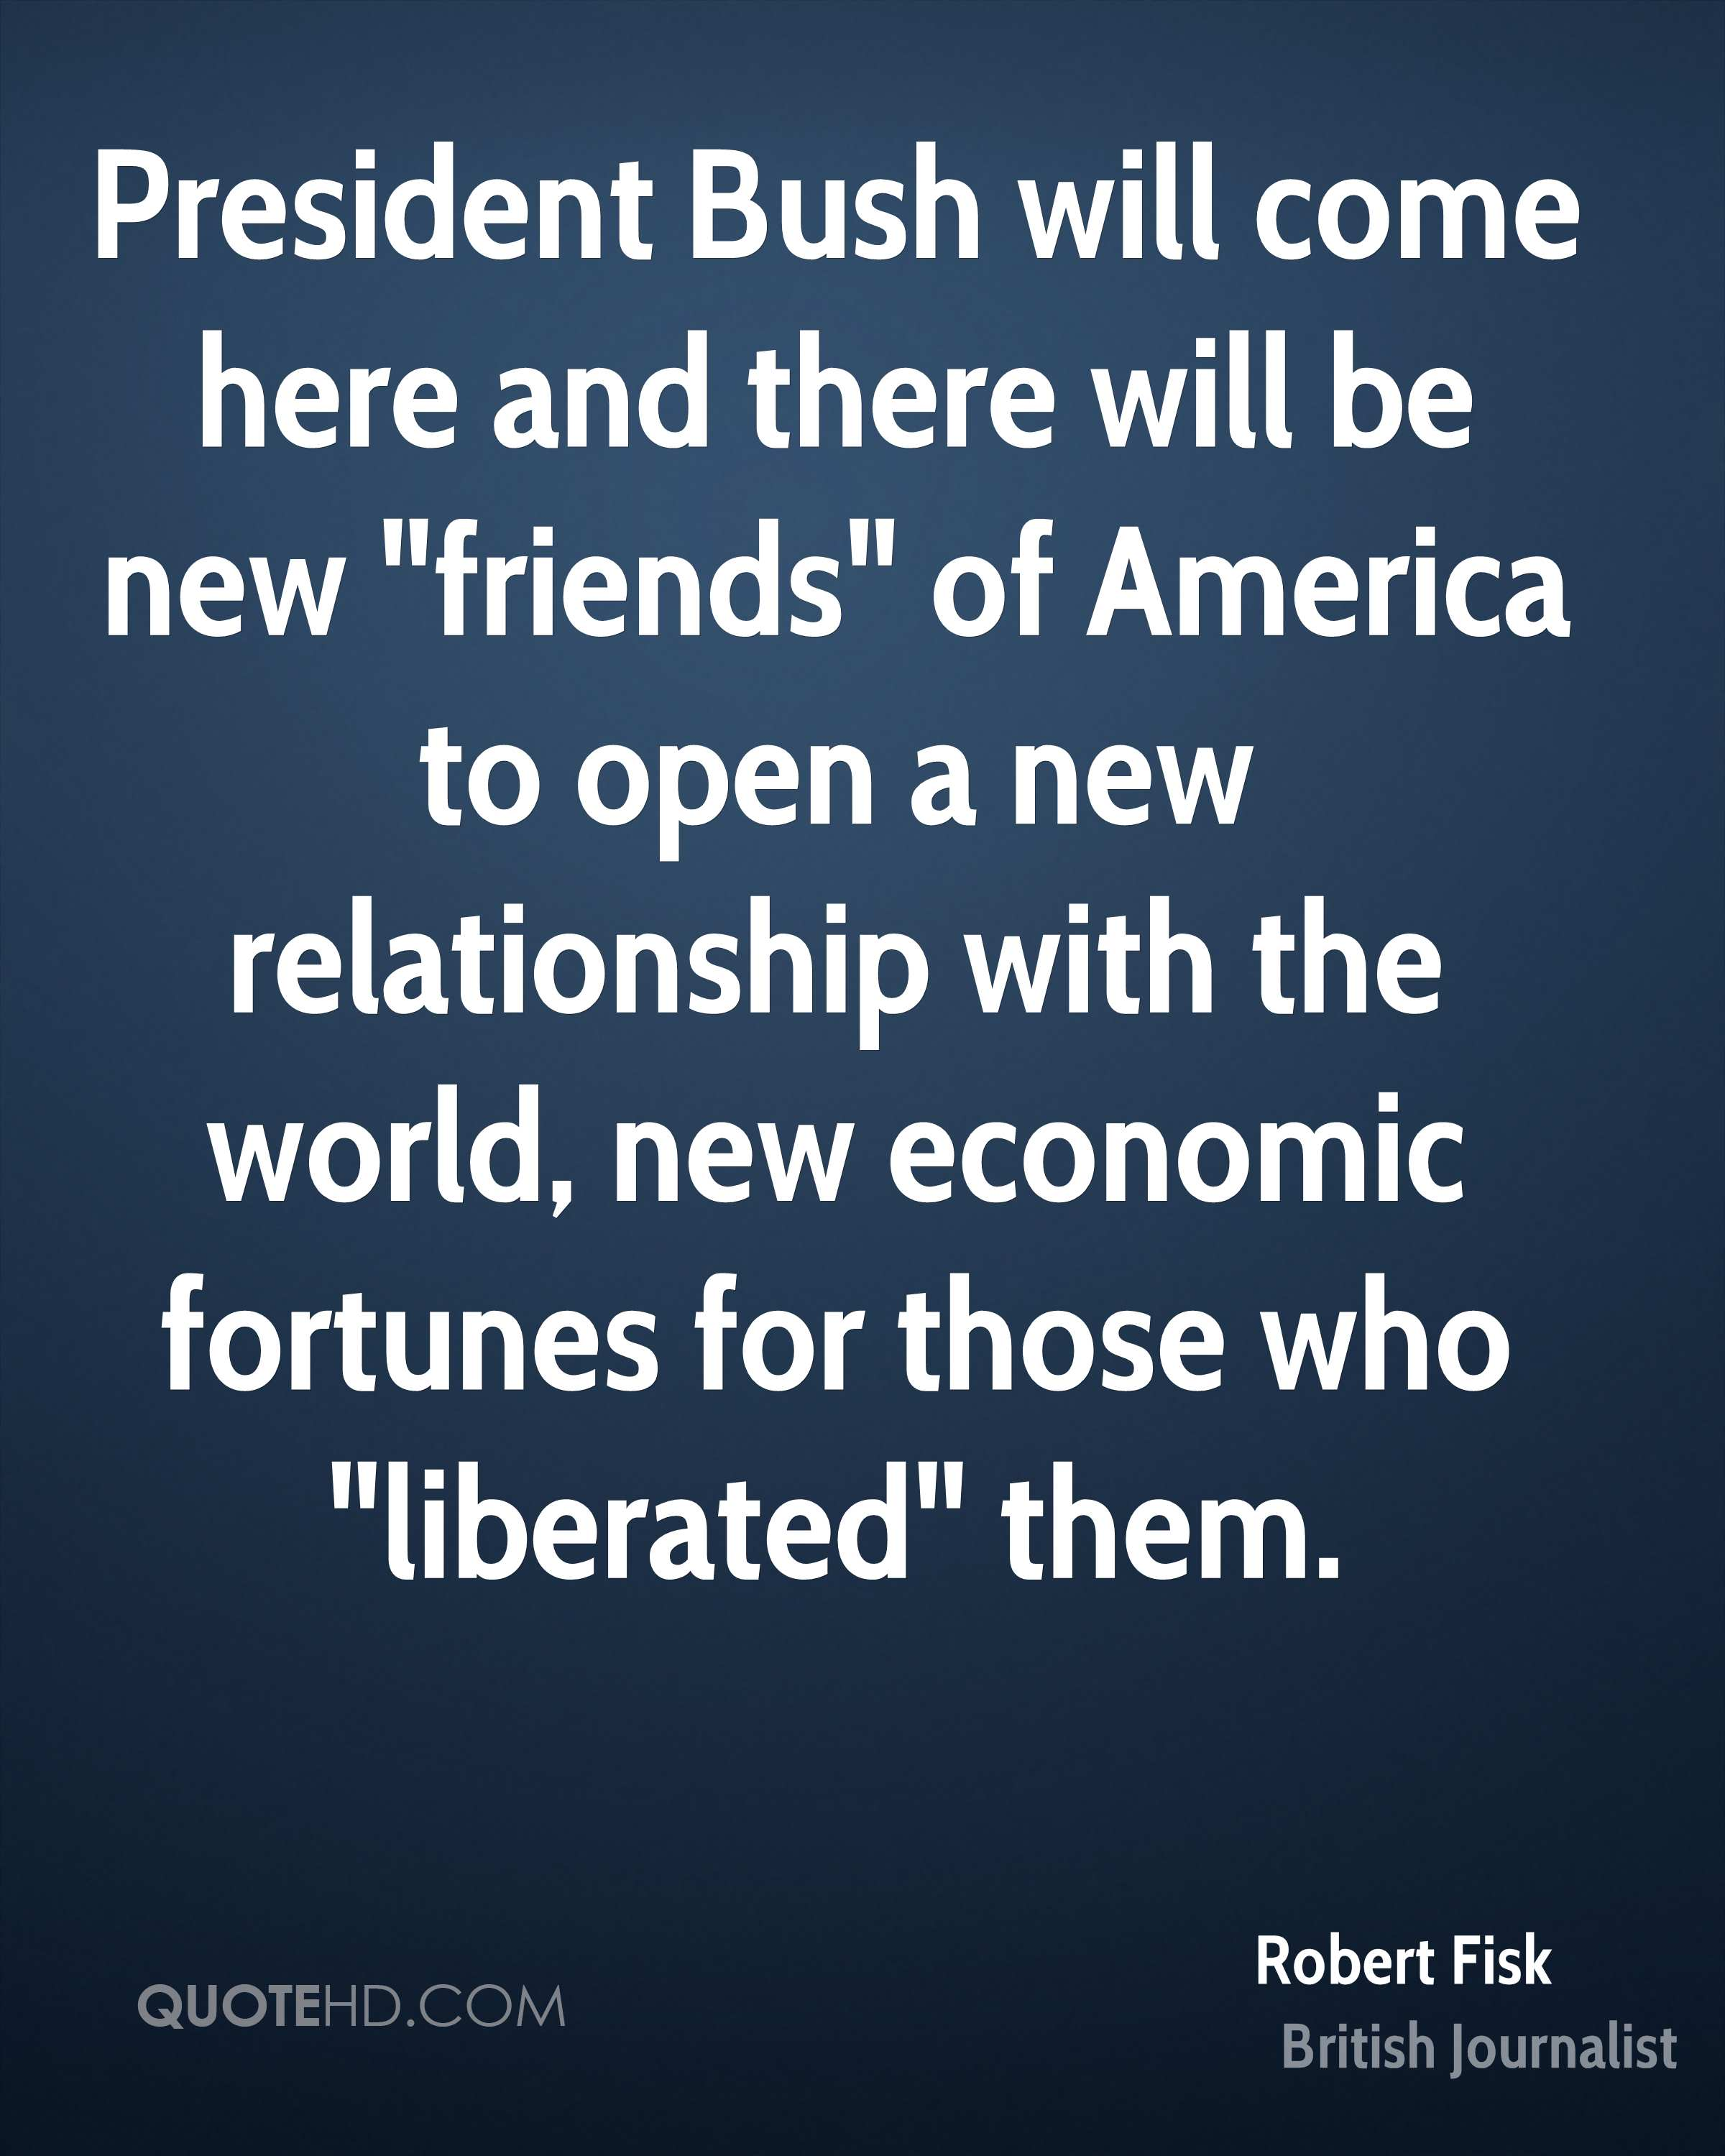 """President Bush will come here and there will be new """"friends"""" of America to open a new relationship with the world, new economic fortunes for those who """"liberated"""" them."""